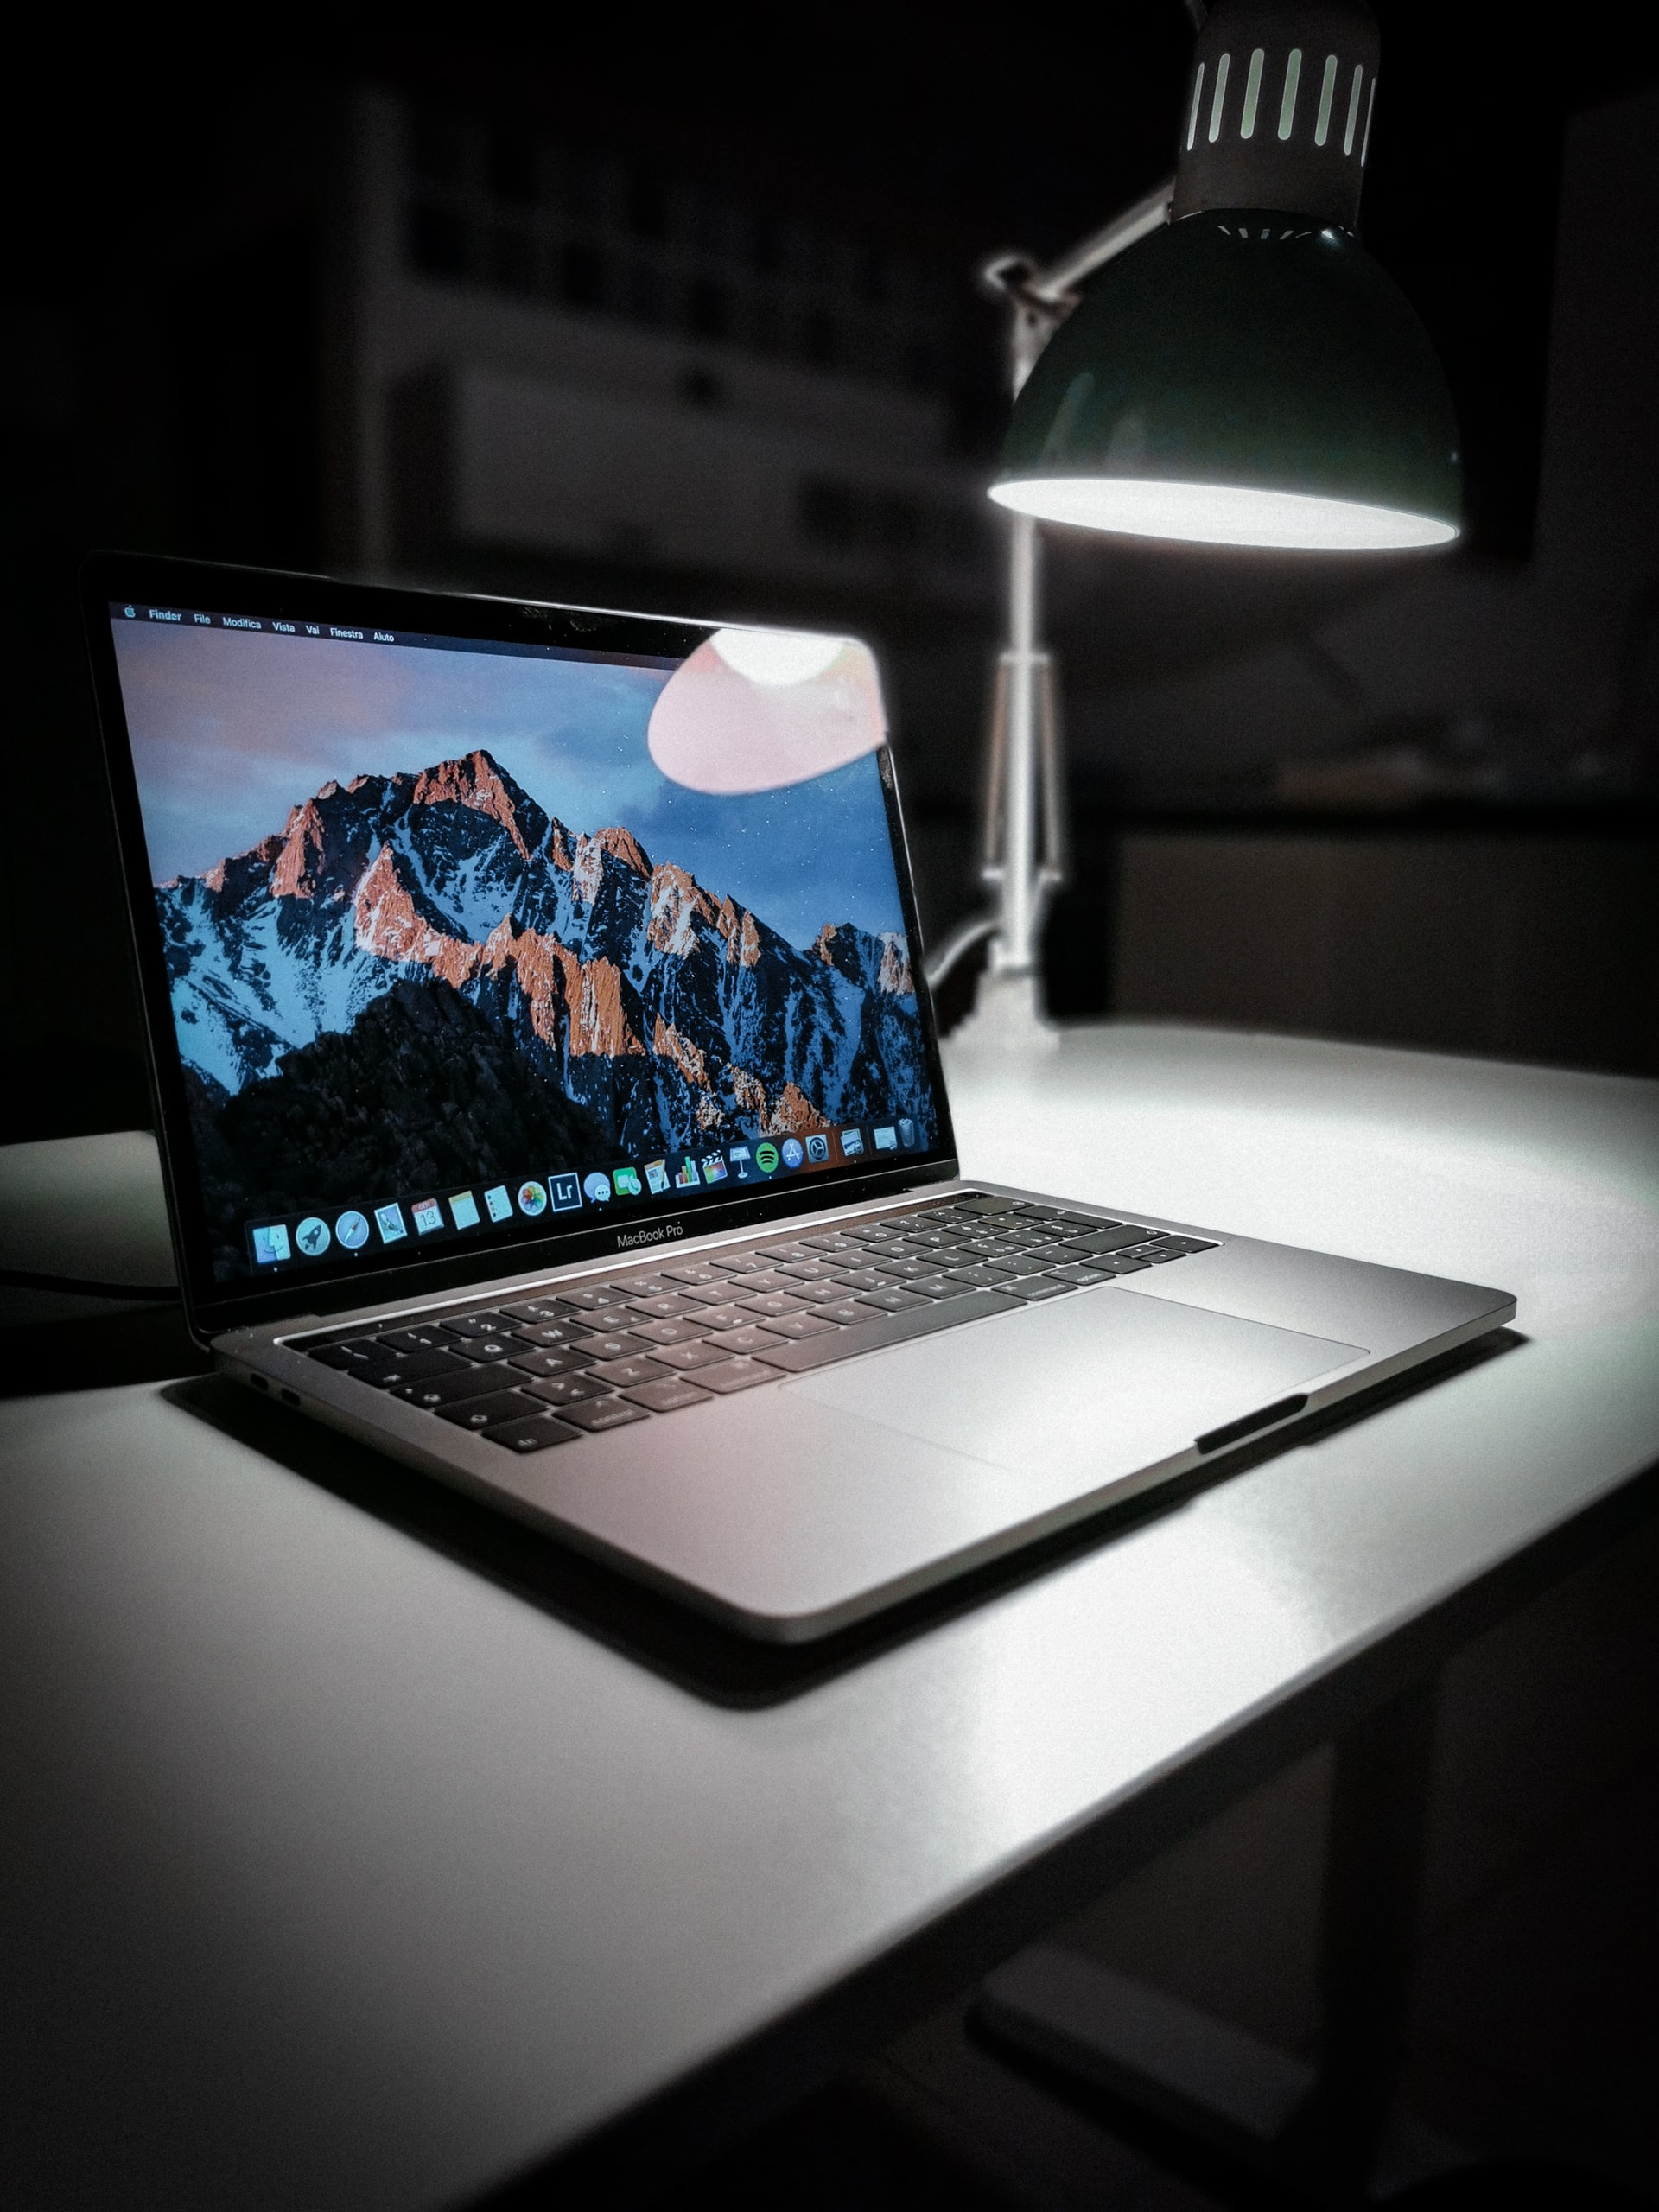 Worldwide PC Shipments Grew 10.7% in Q4 of 2020 and 4.8% for the Year - Report